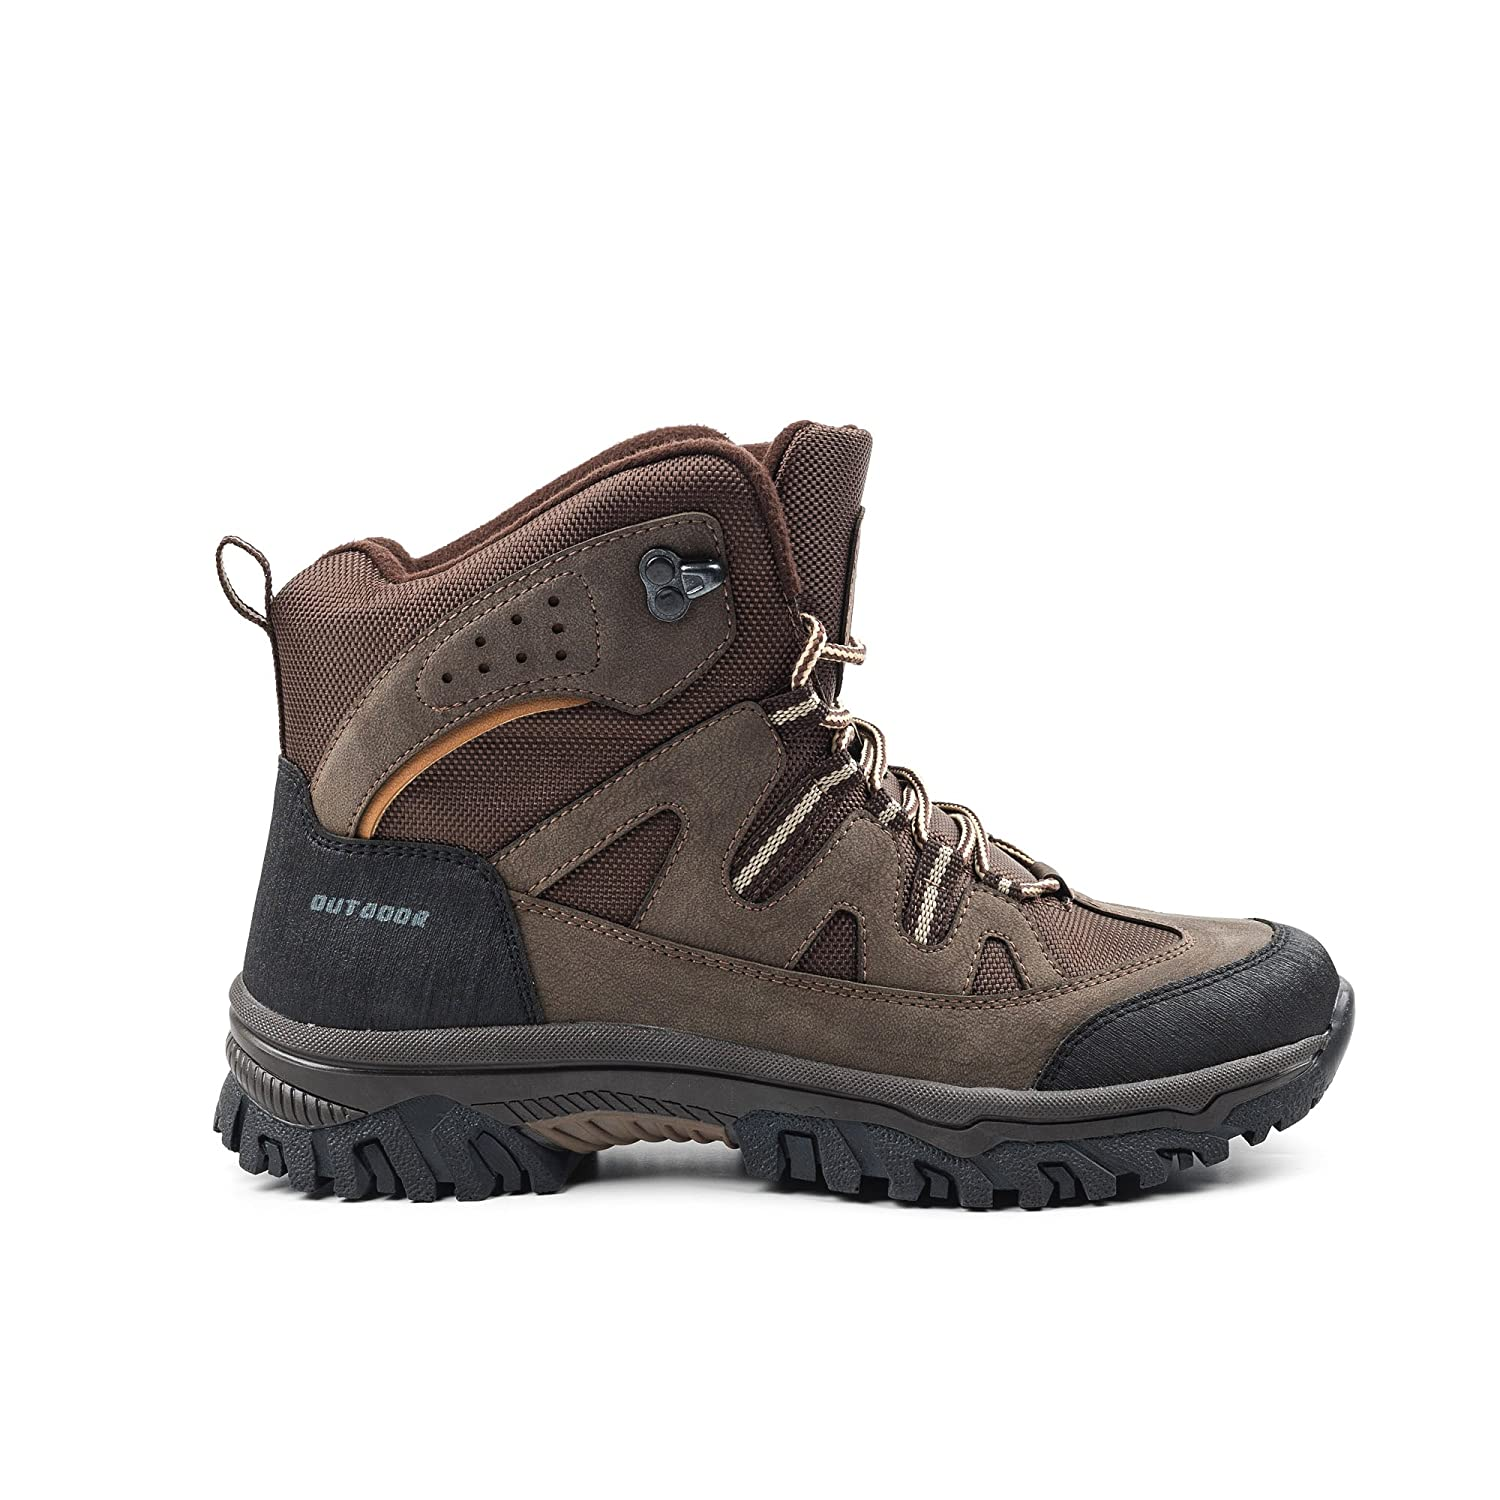 Letoon Mens Hiking Boots Hiking Shoe Mountain Shoe Outdoor Boots Working Shoe Trekking